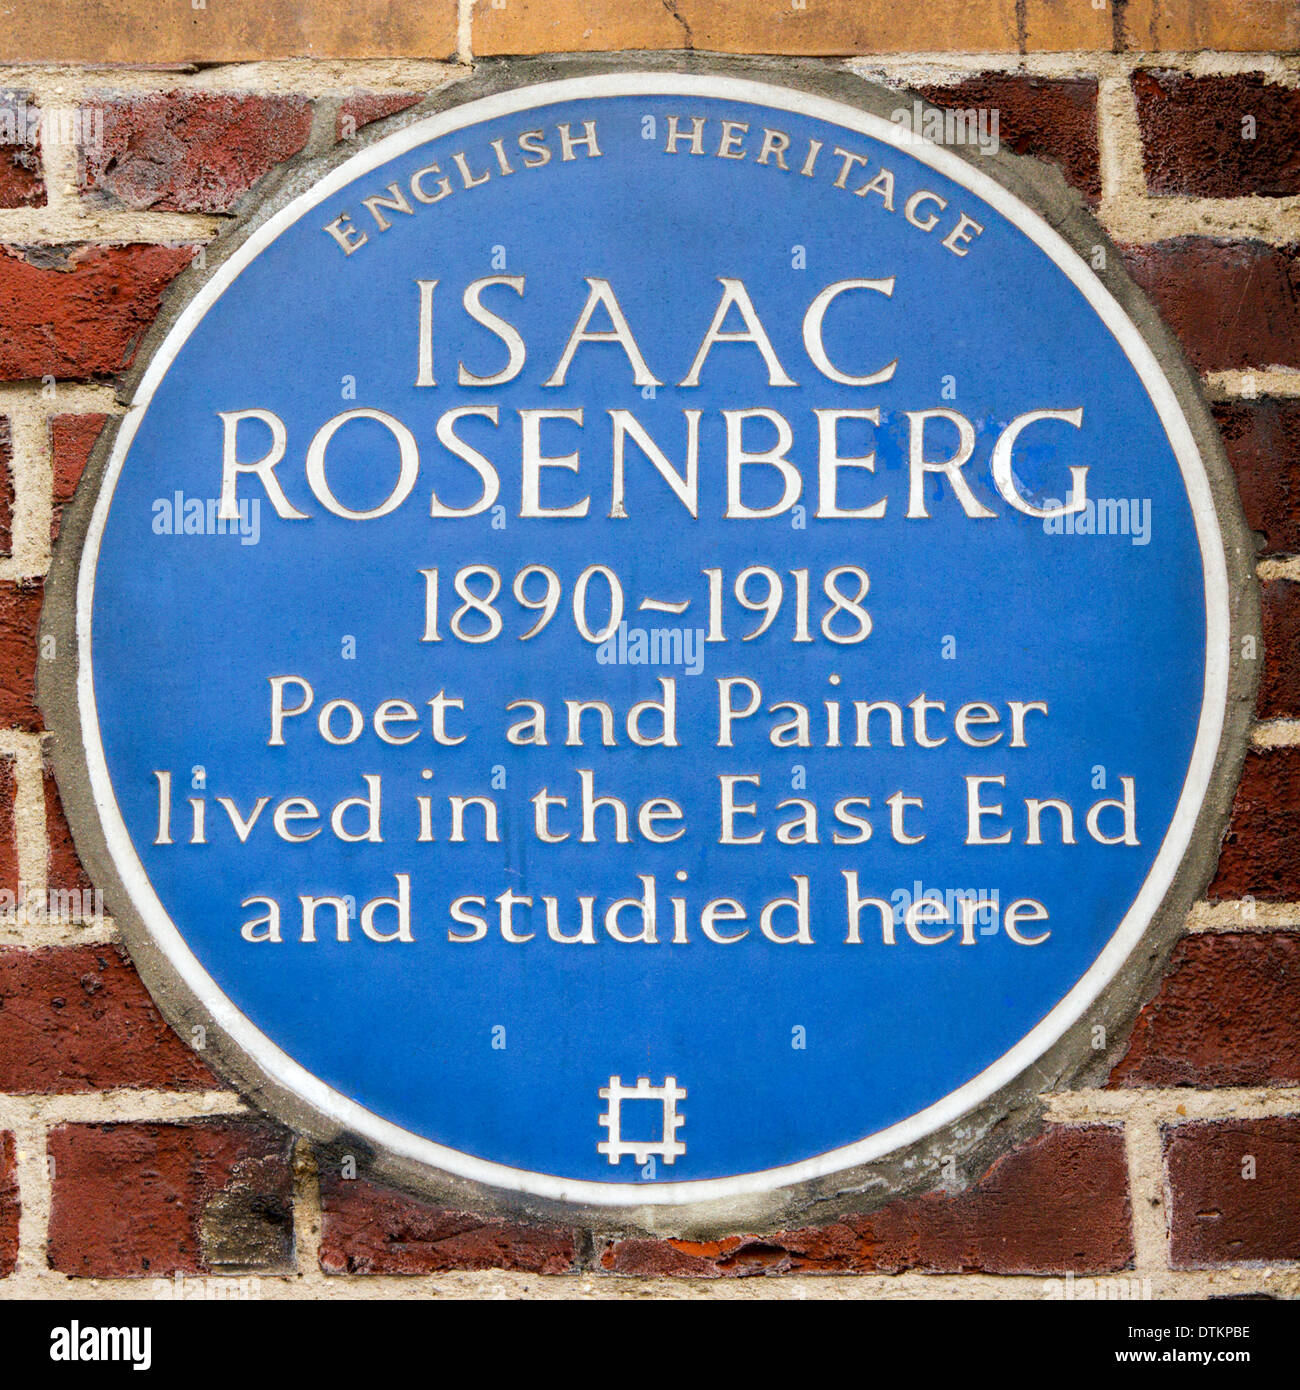 A blue plaque commemorating Isaac Rosenberg on the Whitechapel Gallery, formerly Whitechapel Library. - Stock Image